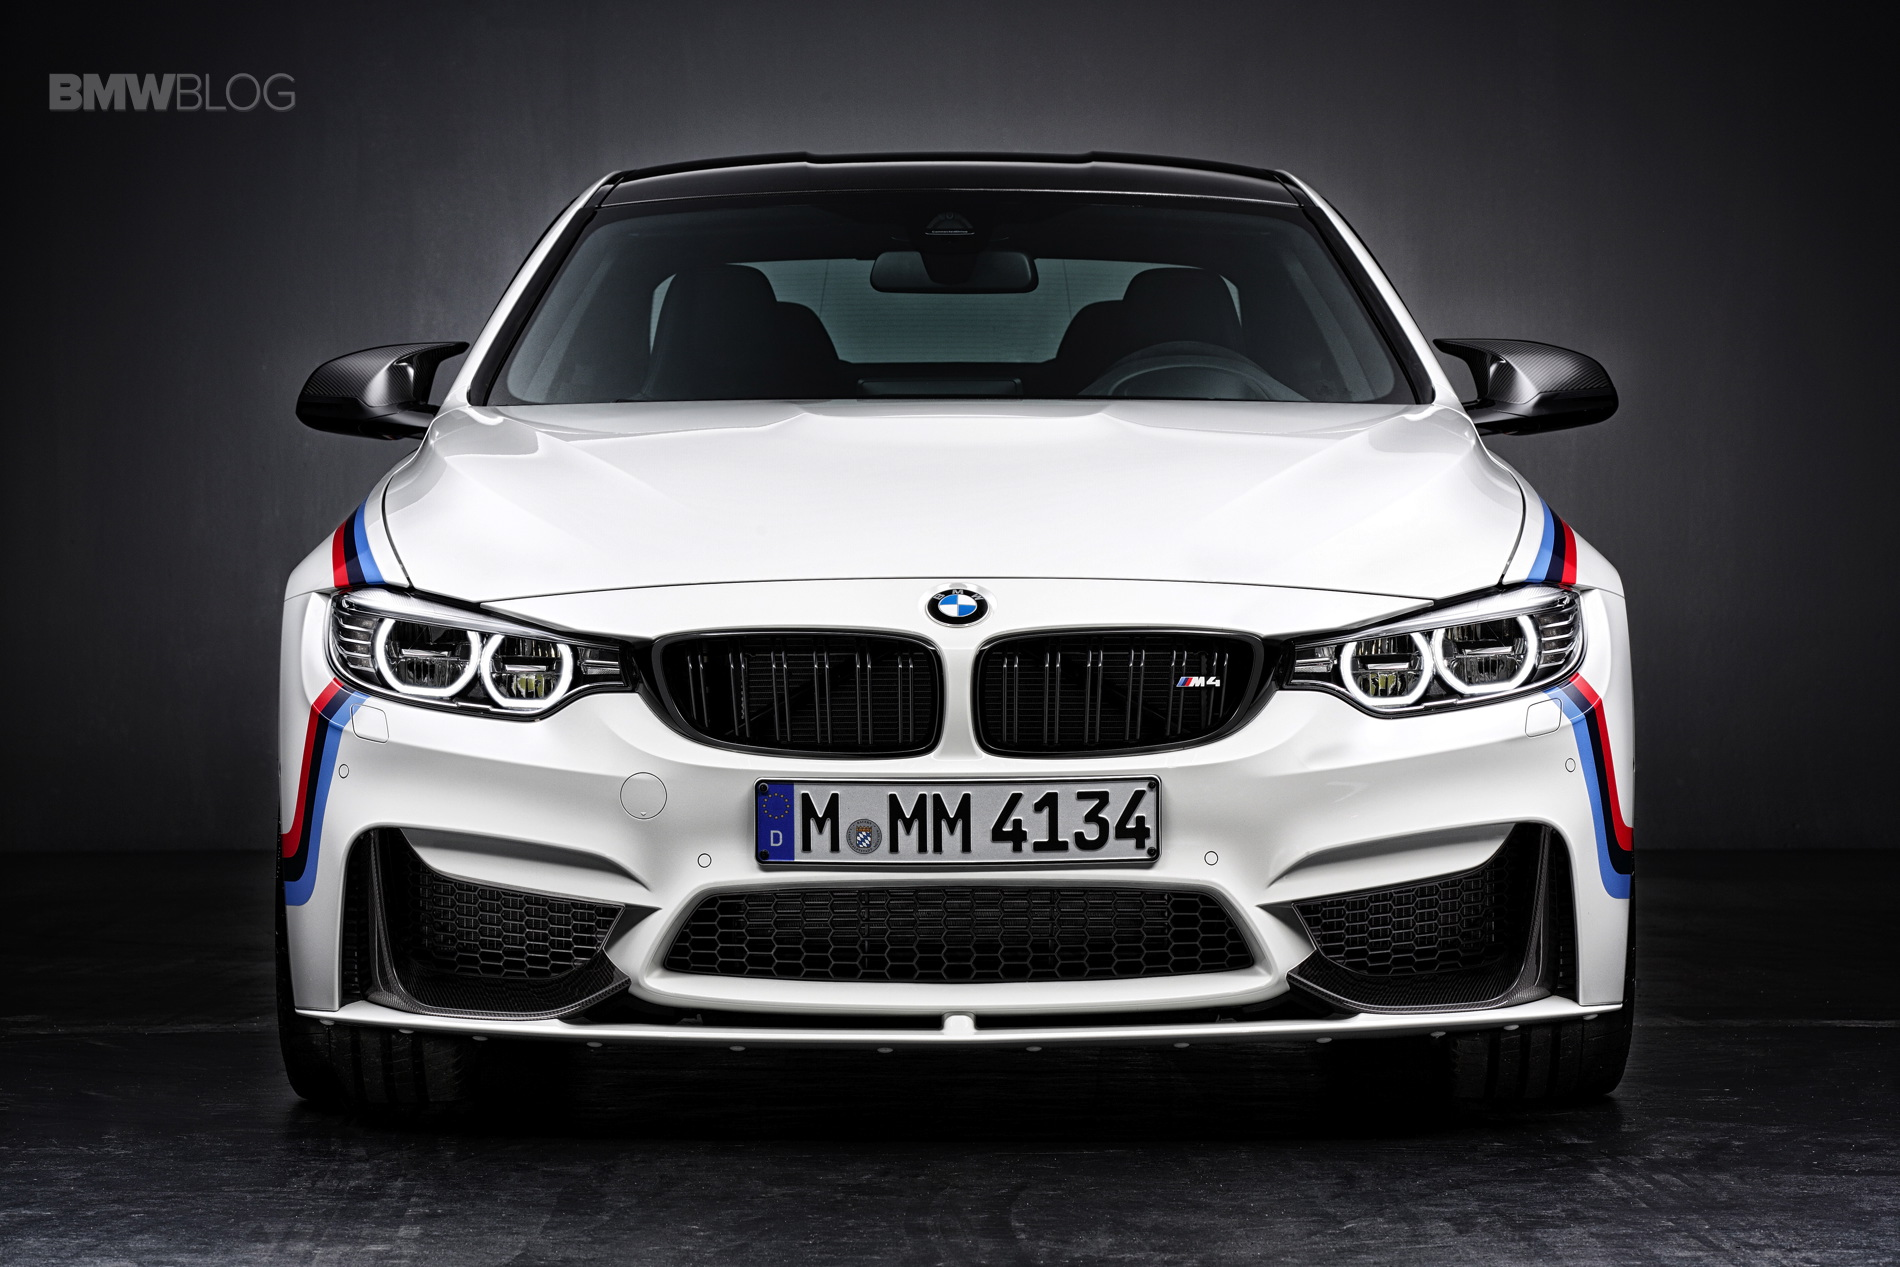 New M Performance Parts For Bmw M3 Bmw M4 Coupe And Bmw M4 Convertible